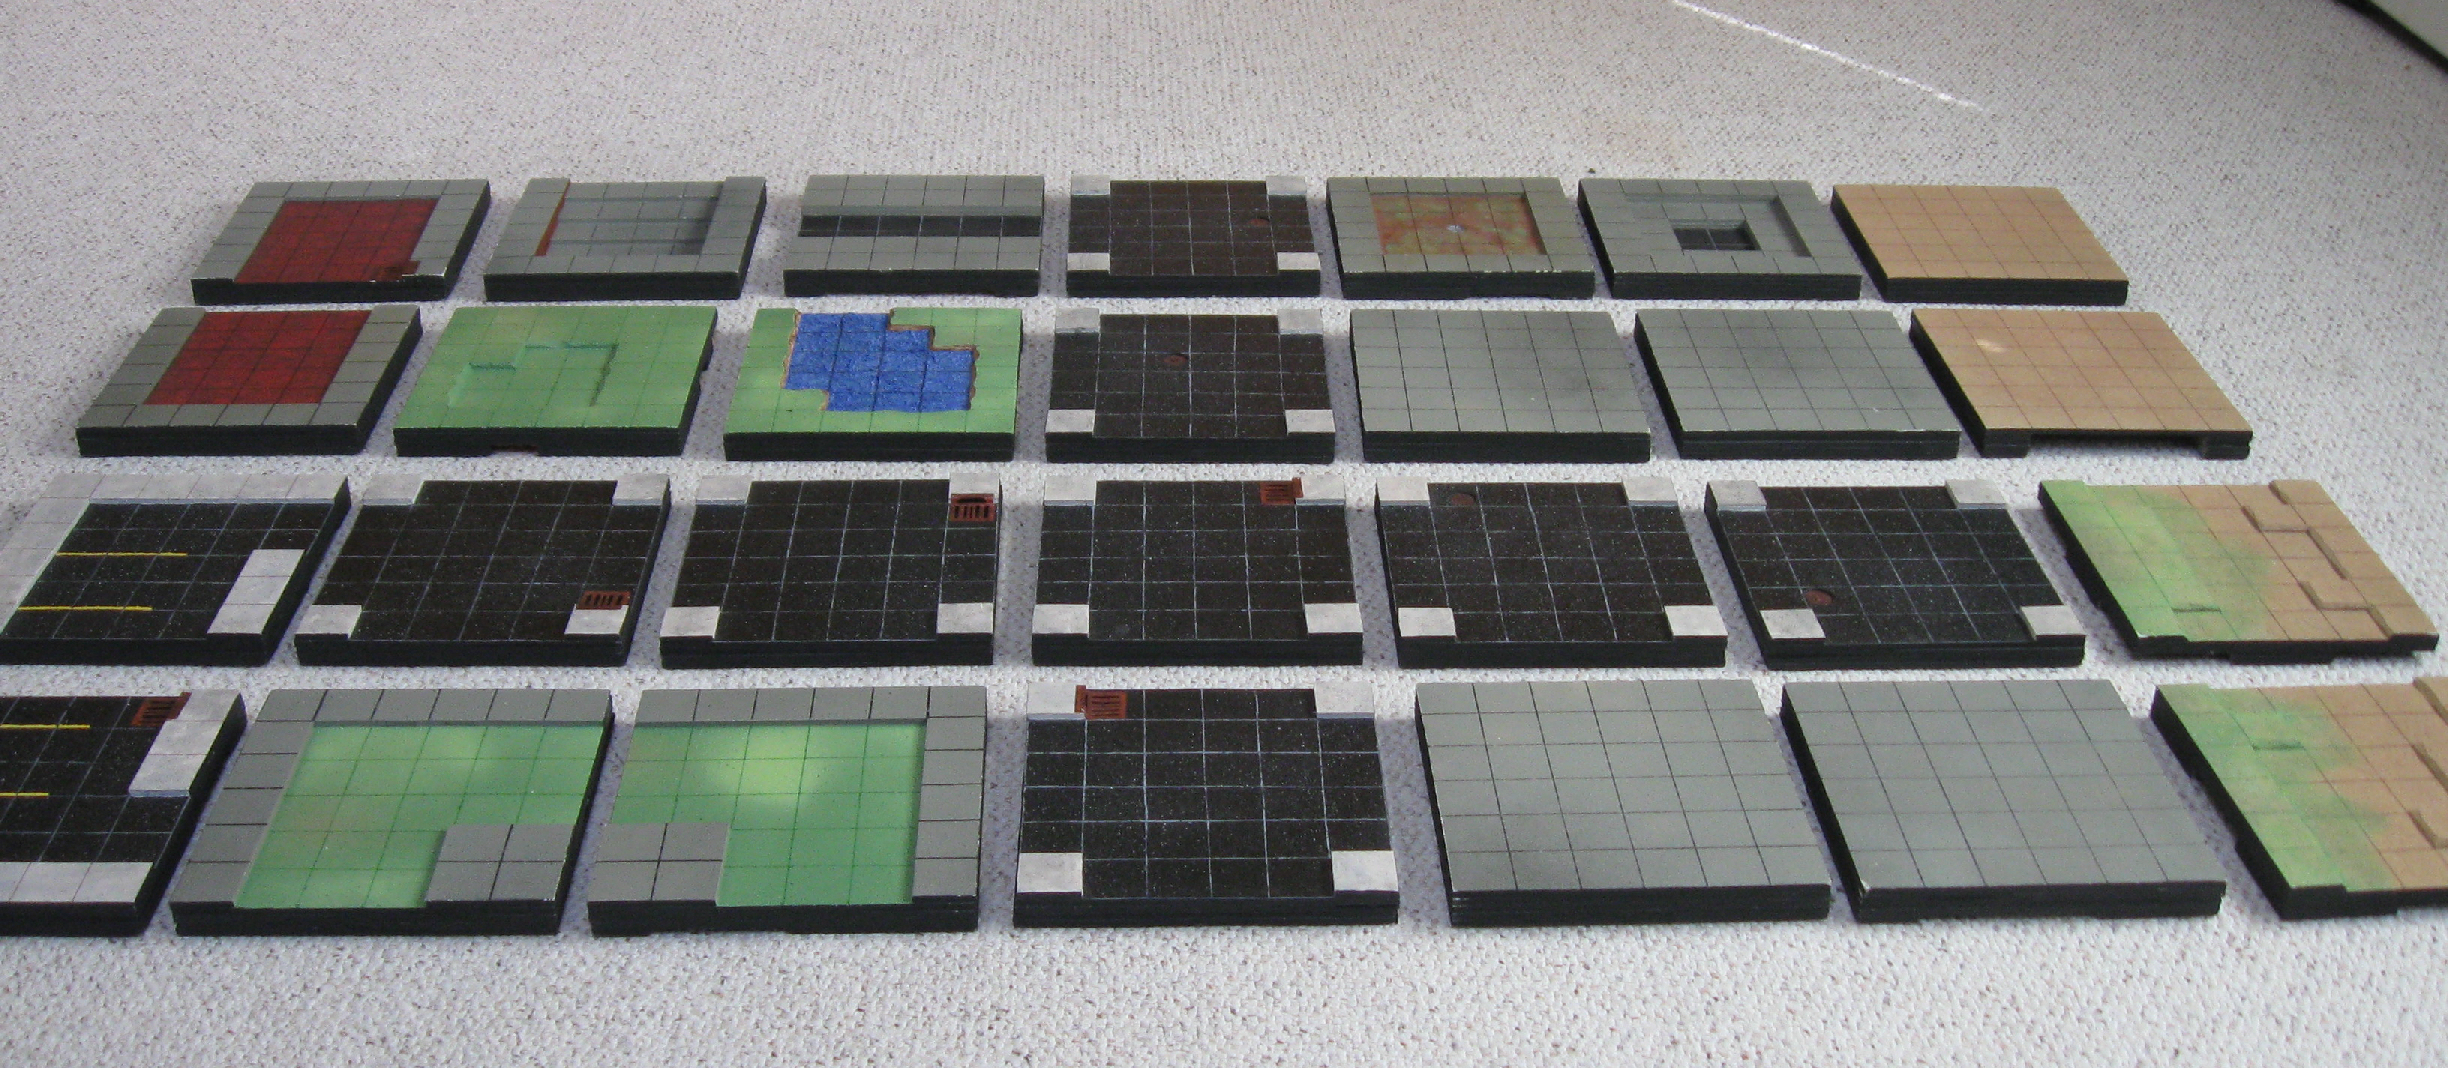 Customizable 3-D Heroclix Map | Toychop - Printable Heroclix Maps